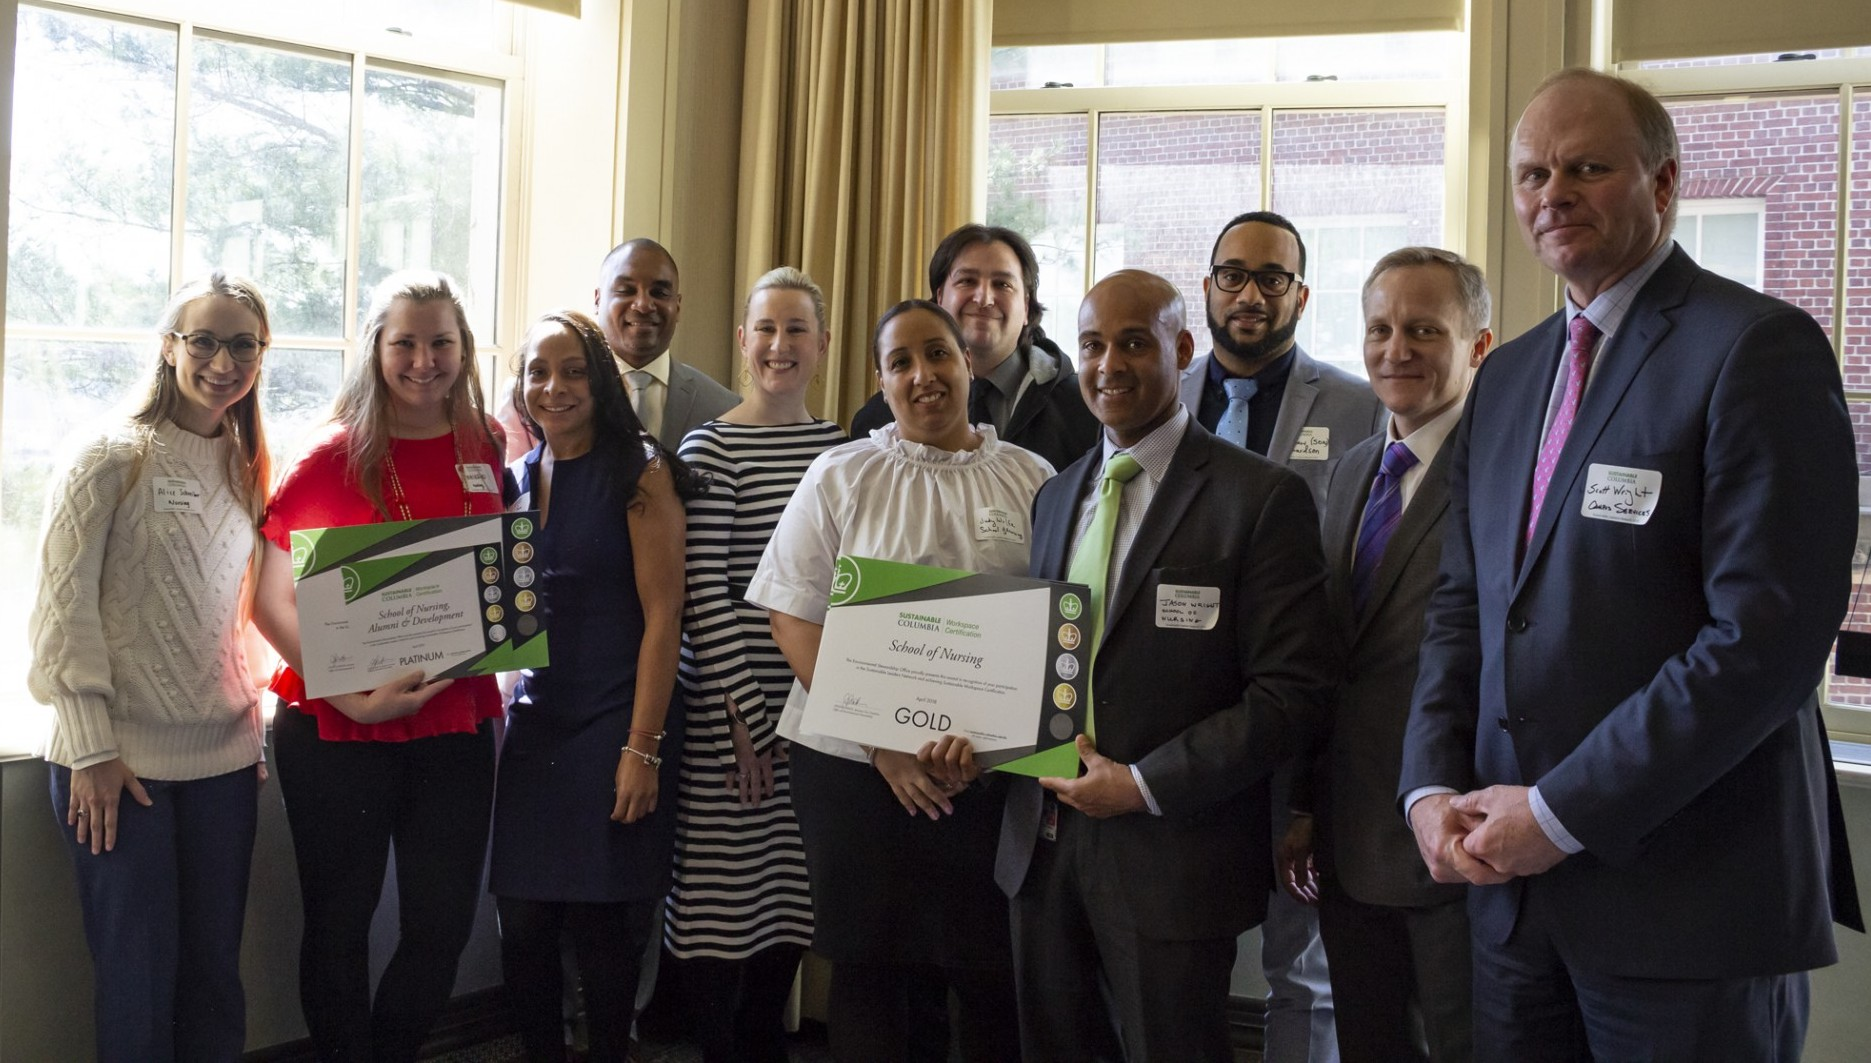 School of Nursing Green Council is recognized